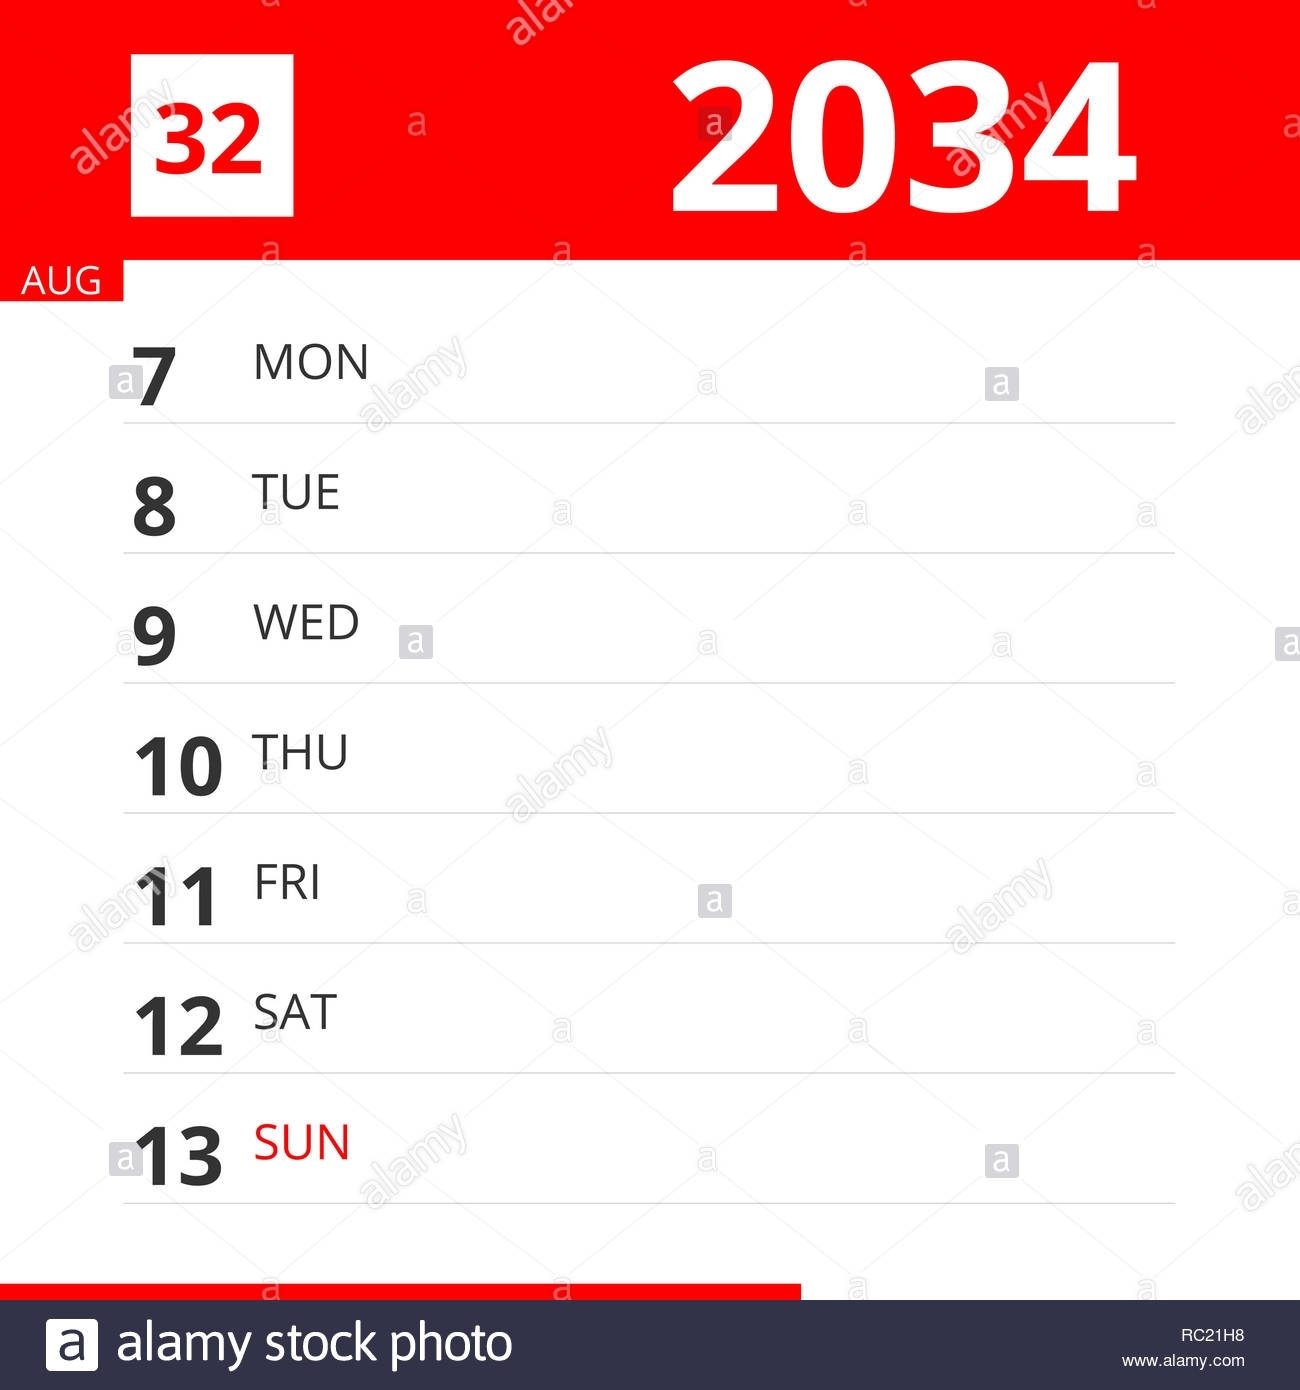 Calendar Planner For Week 32 In 2034, Ends August 13, 2034